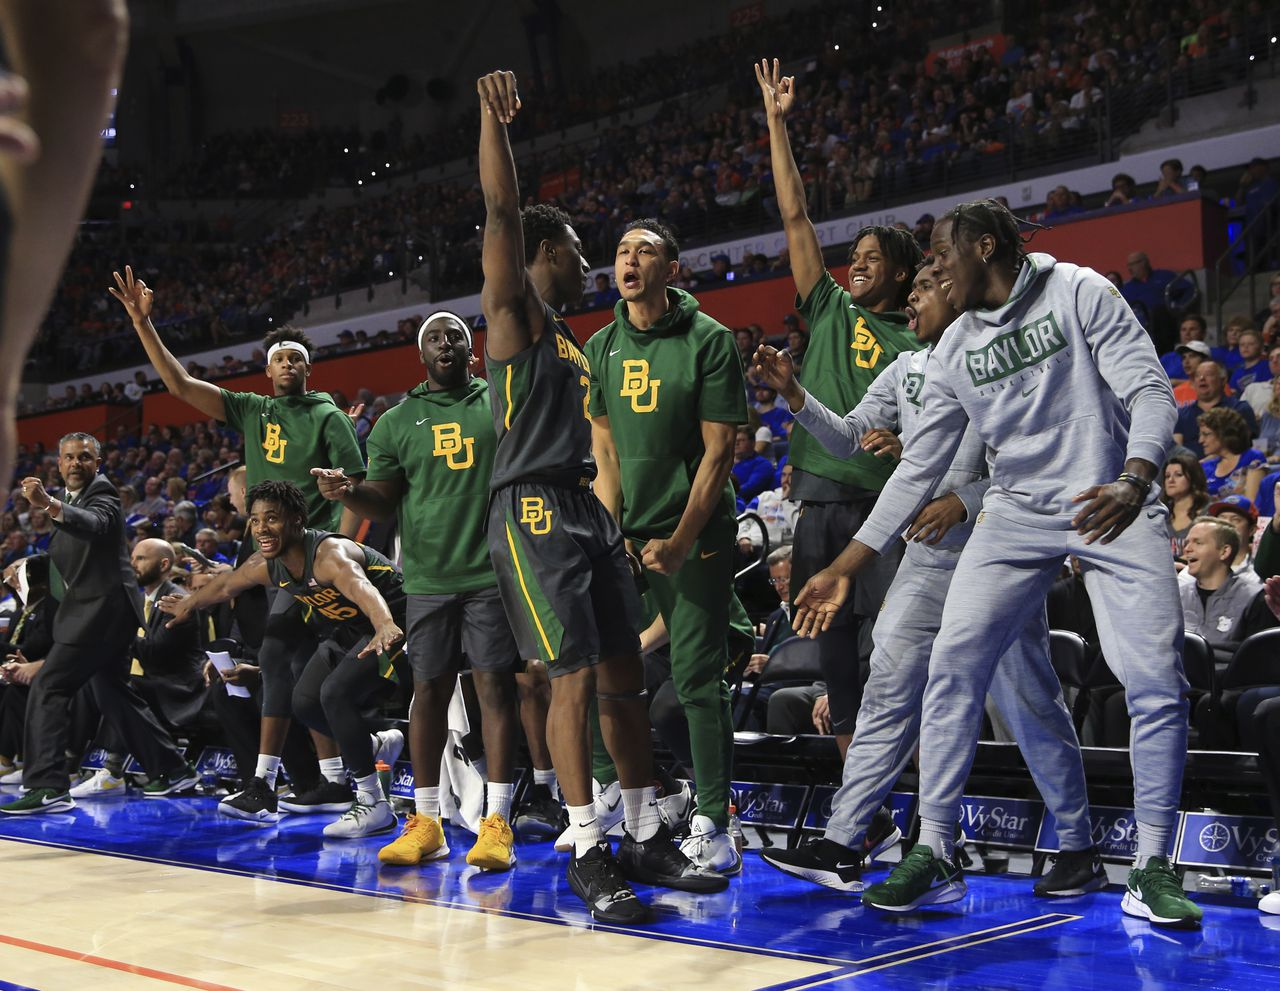 Baylor MBB gets No. 1 2021 class